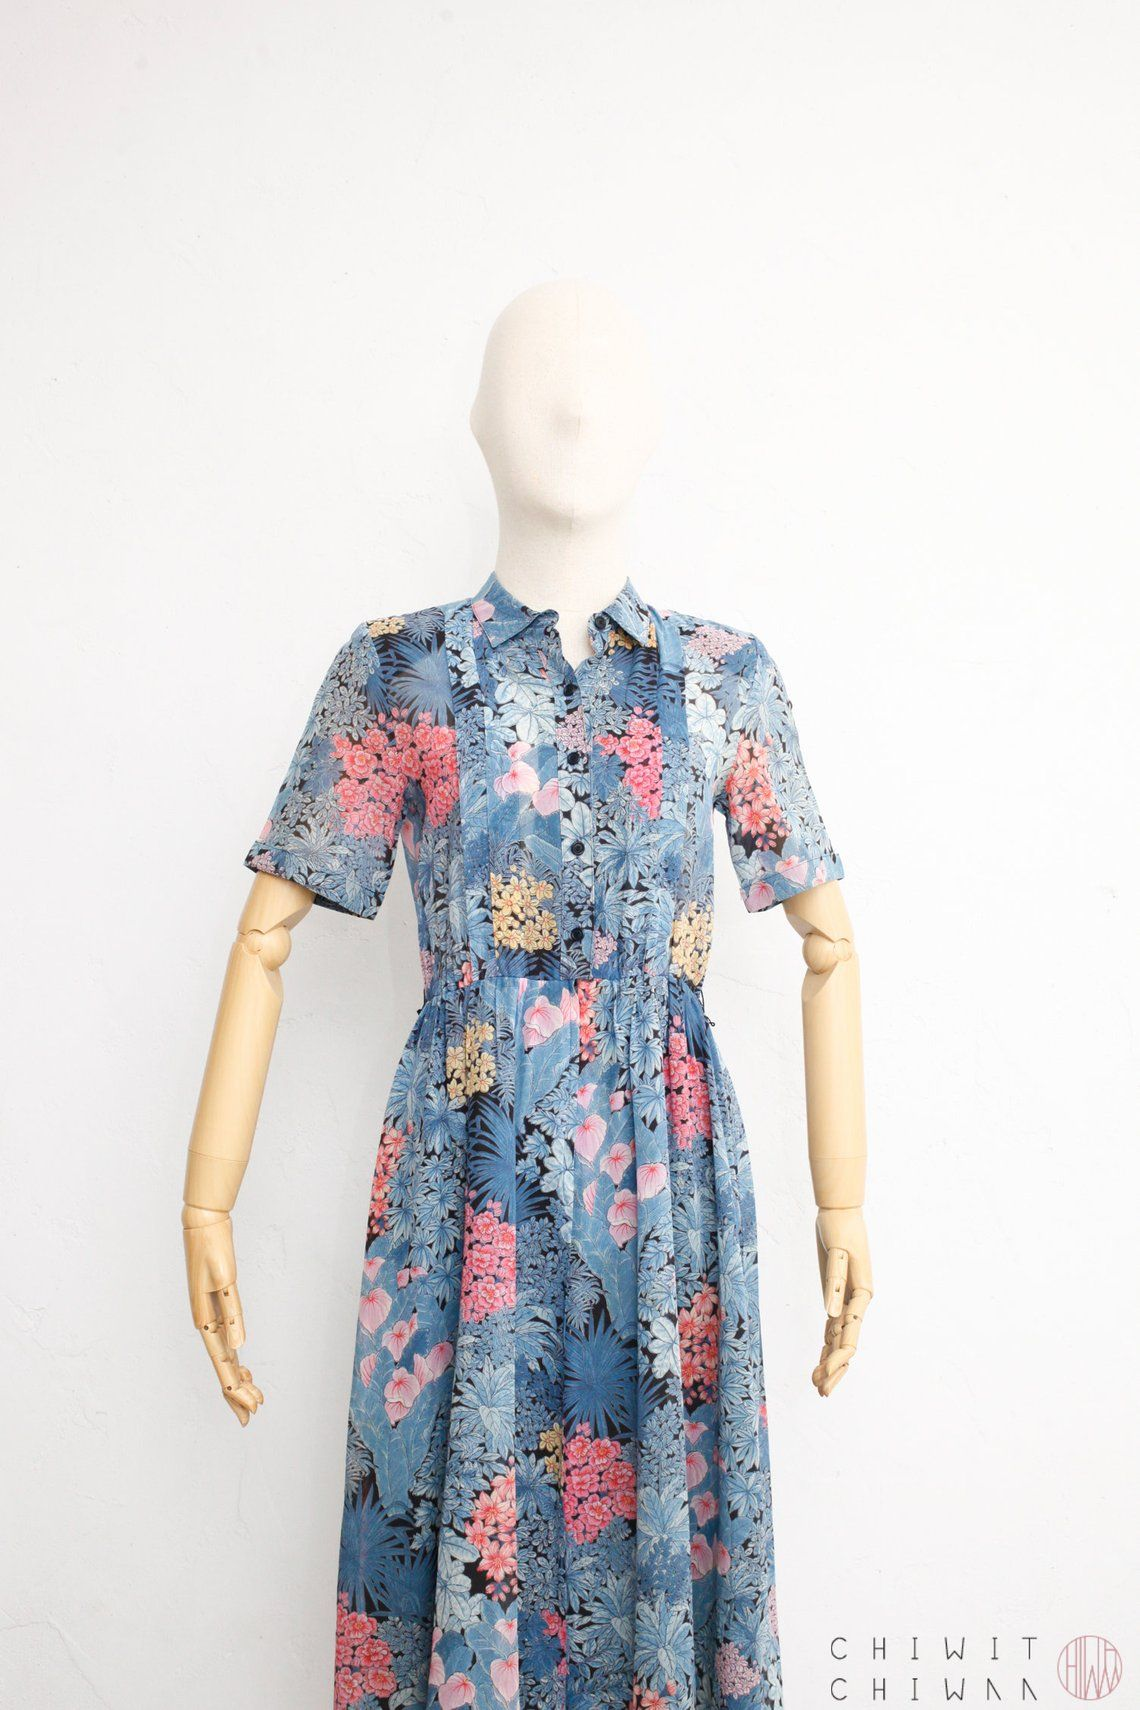 e88c3f023ce83 Vintage 70s Dress | Sheer Cotton Floral Shirtdress | Japanese ...